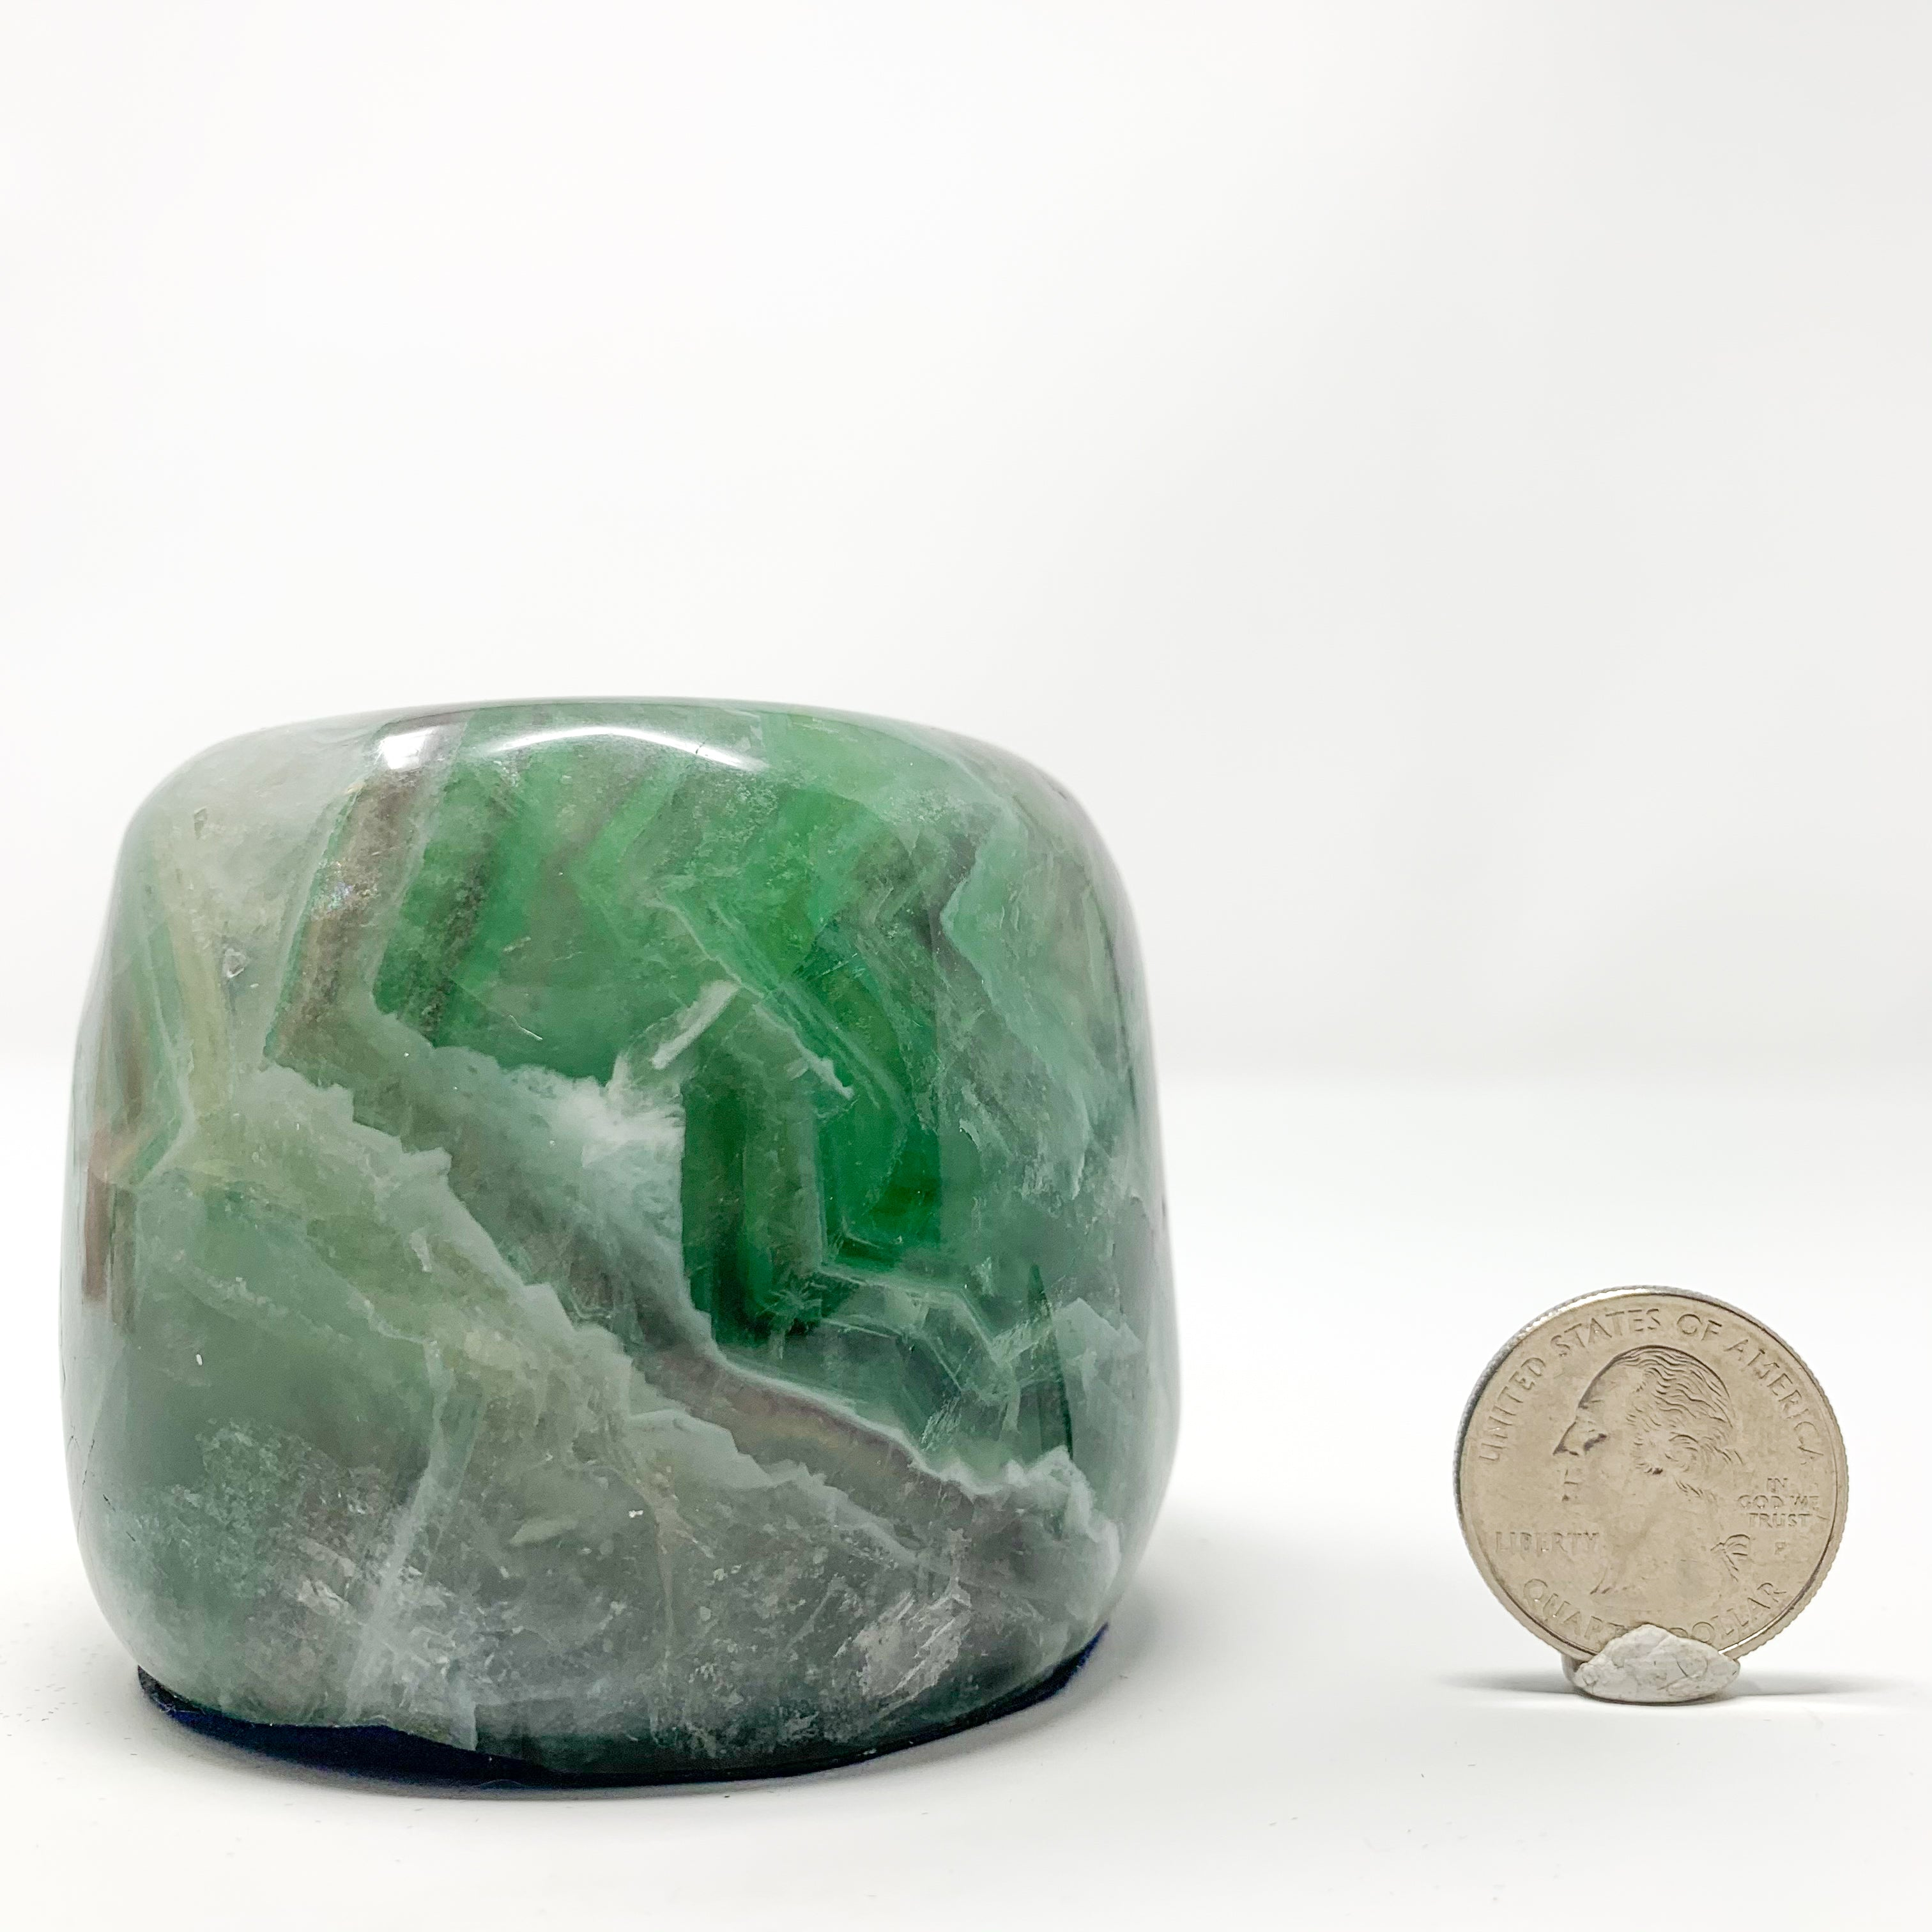 Rainbow Fluorite Candle Holder from Hunan Province, China